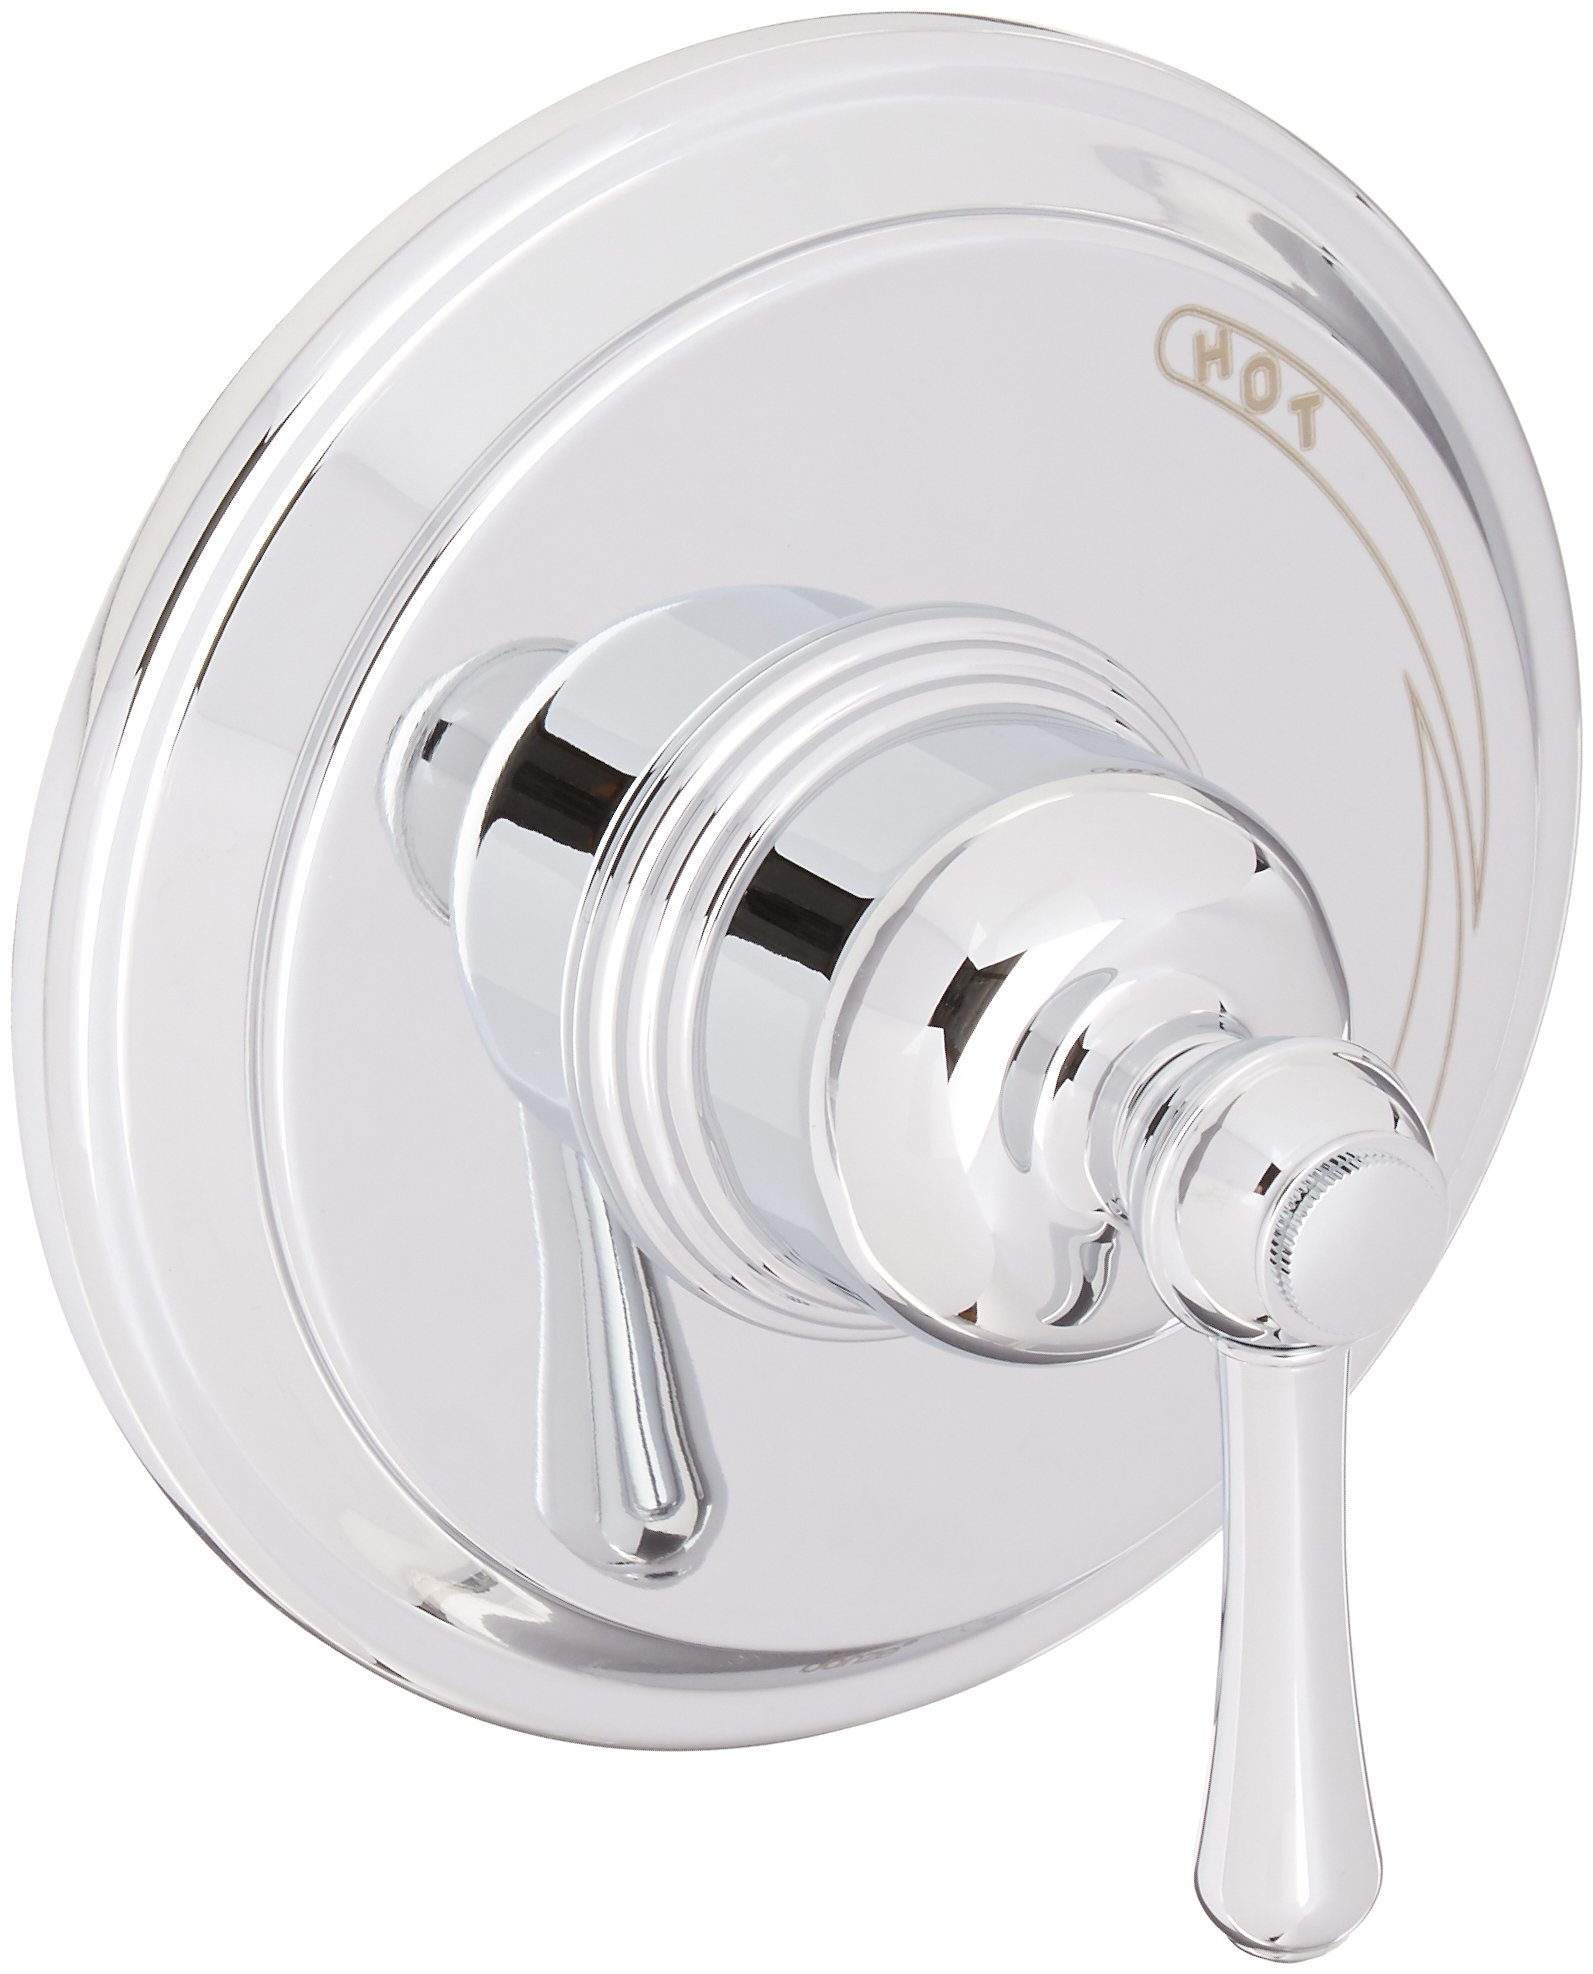 Danze D510457T Opulence Single Handle Pressure Balance Valve Trim Kit, Valve Not Included, Chrome